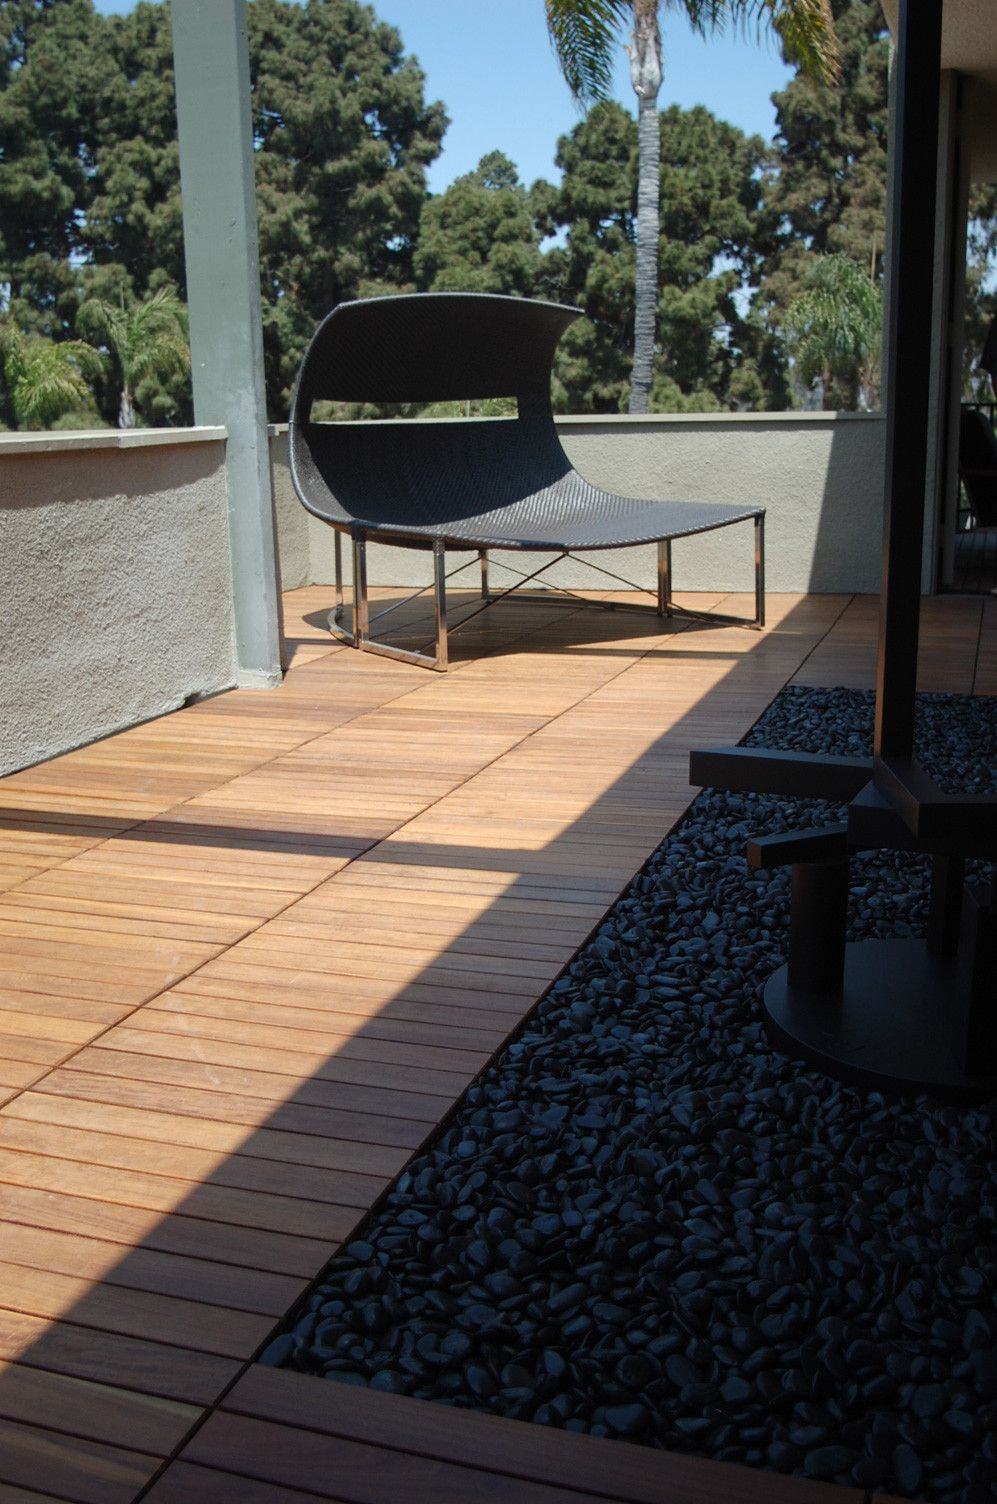 Patio Deck Tiles Recycled Rubber: 12x24 Wood Deck Tile